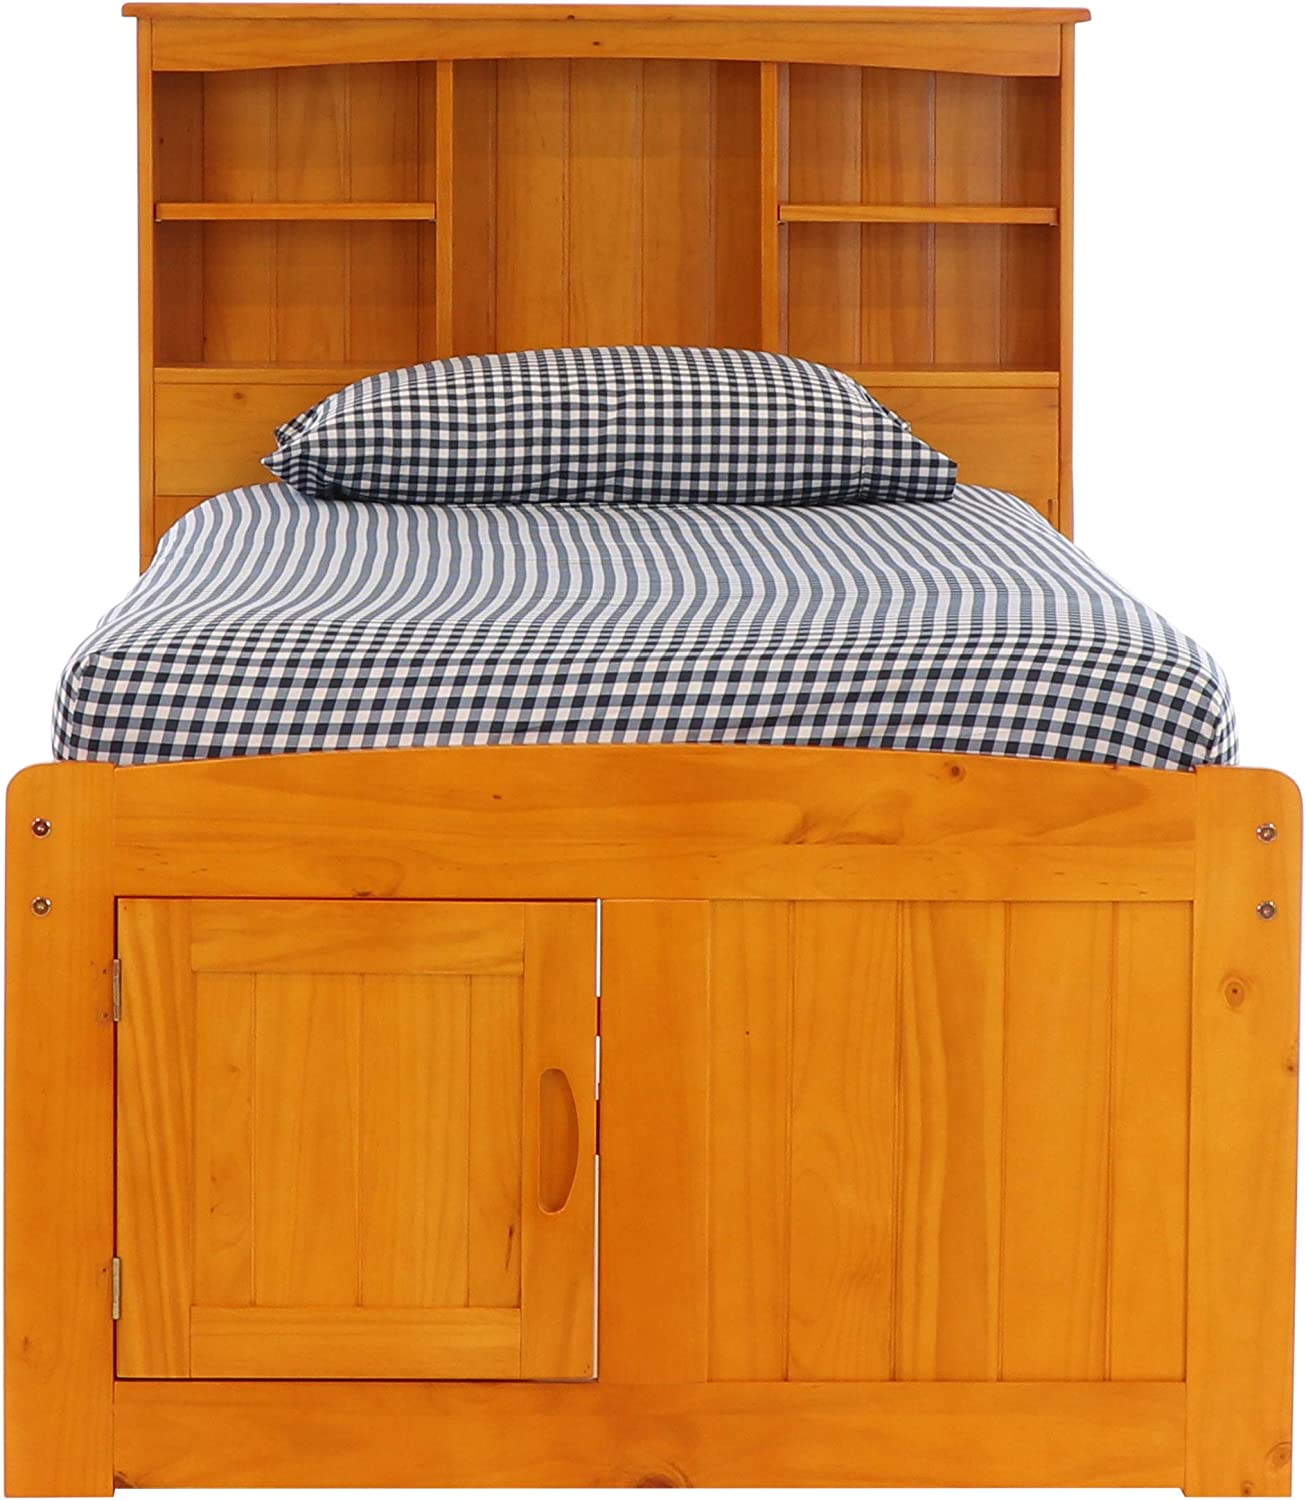 Discovery World Furniture Twin Captains Bed Bookcase with 6 Drawers, Desk, Hutch, Chair and 5 Drawer Chest in Honey Finish